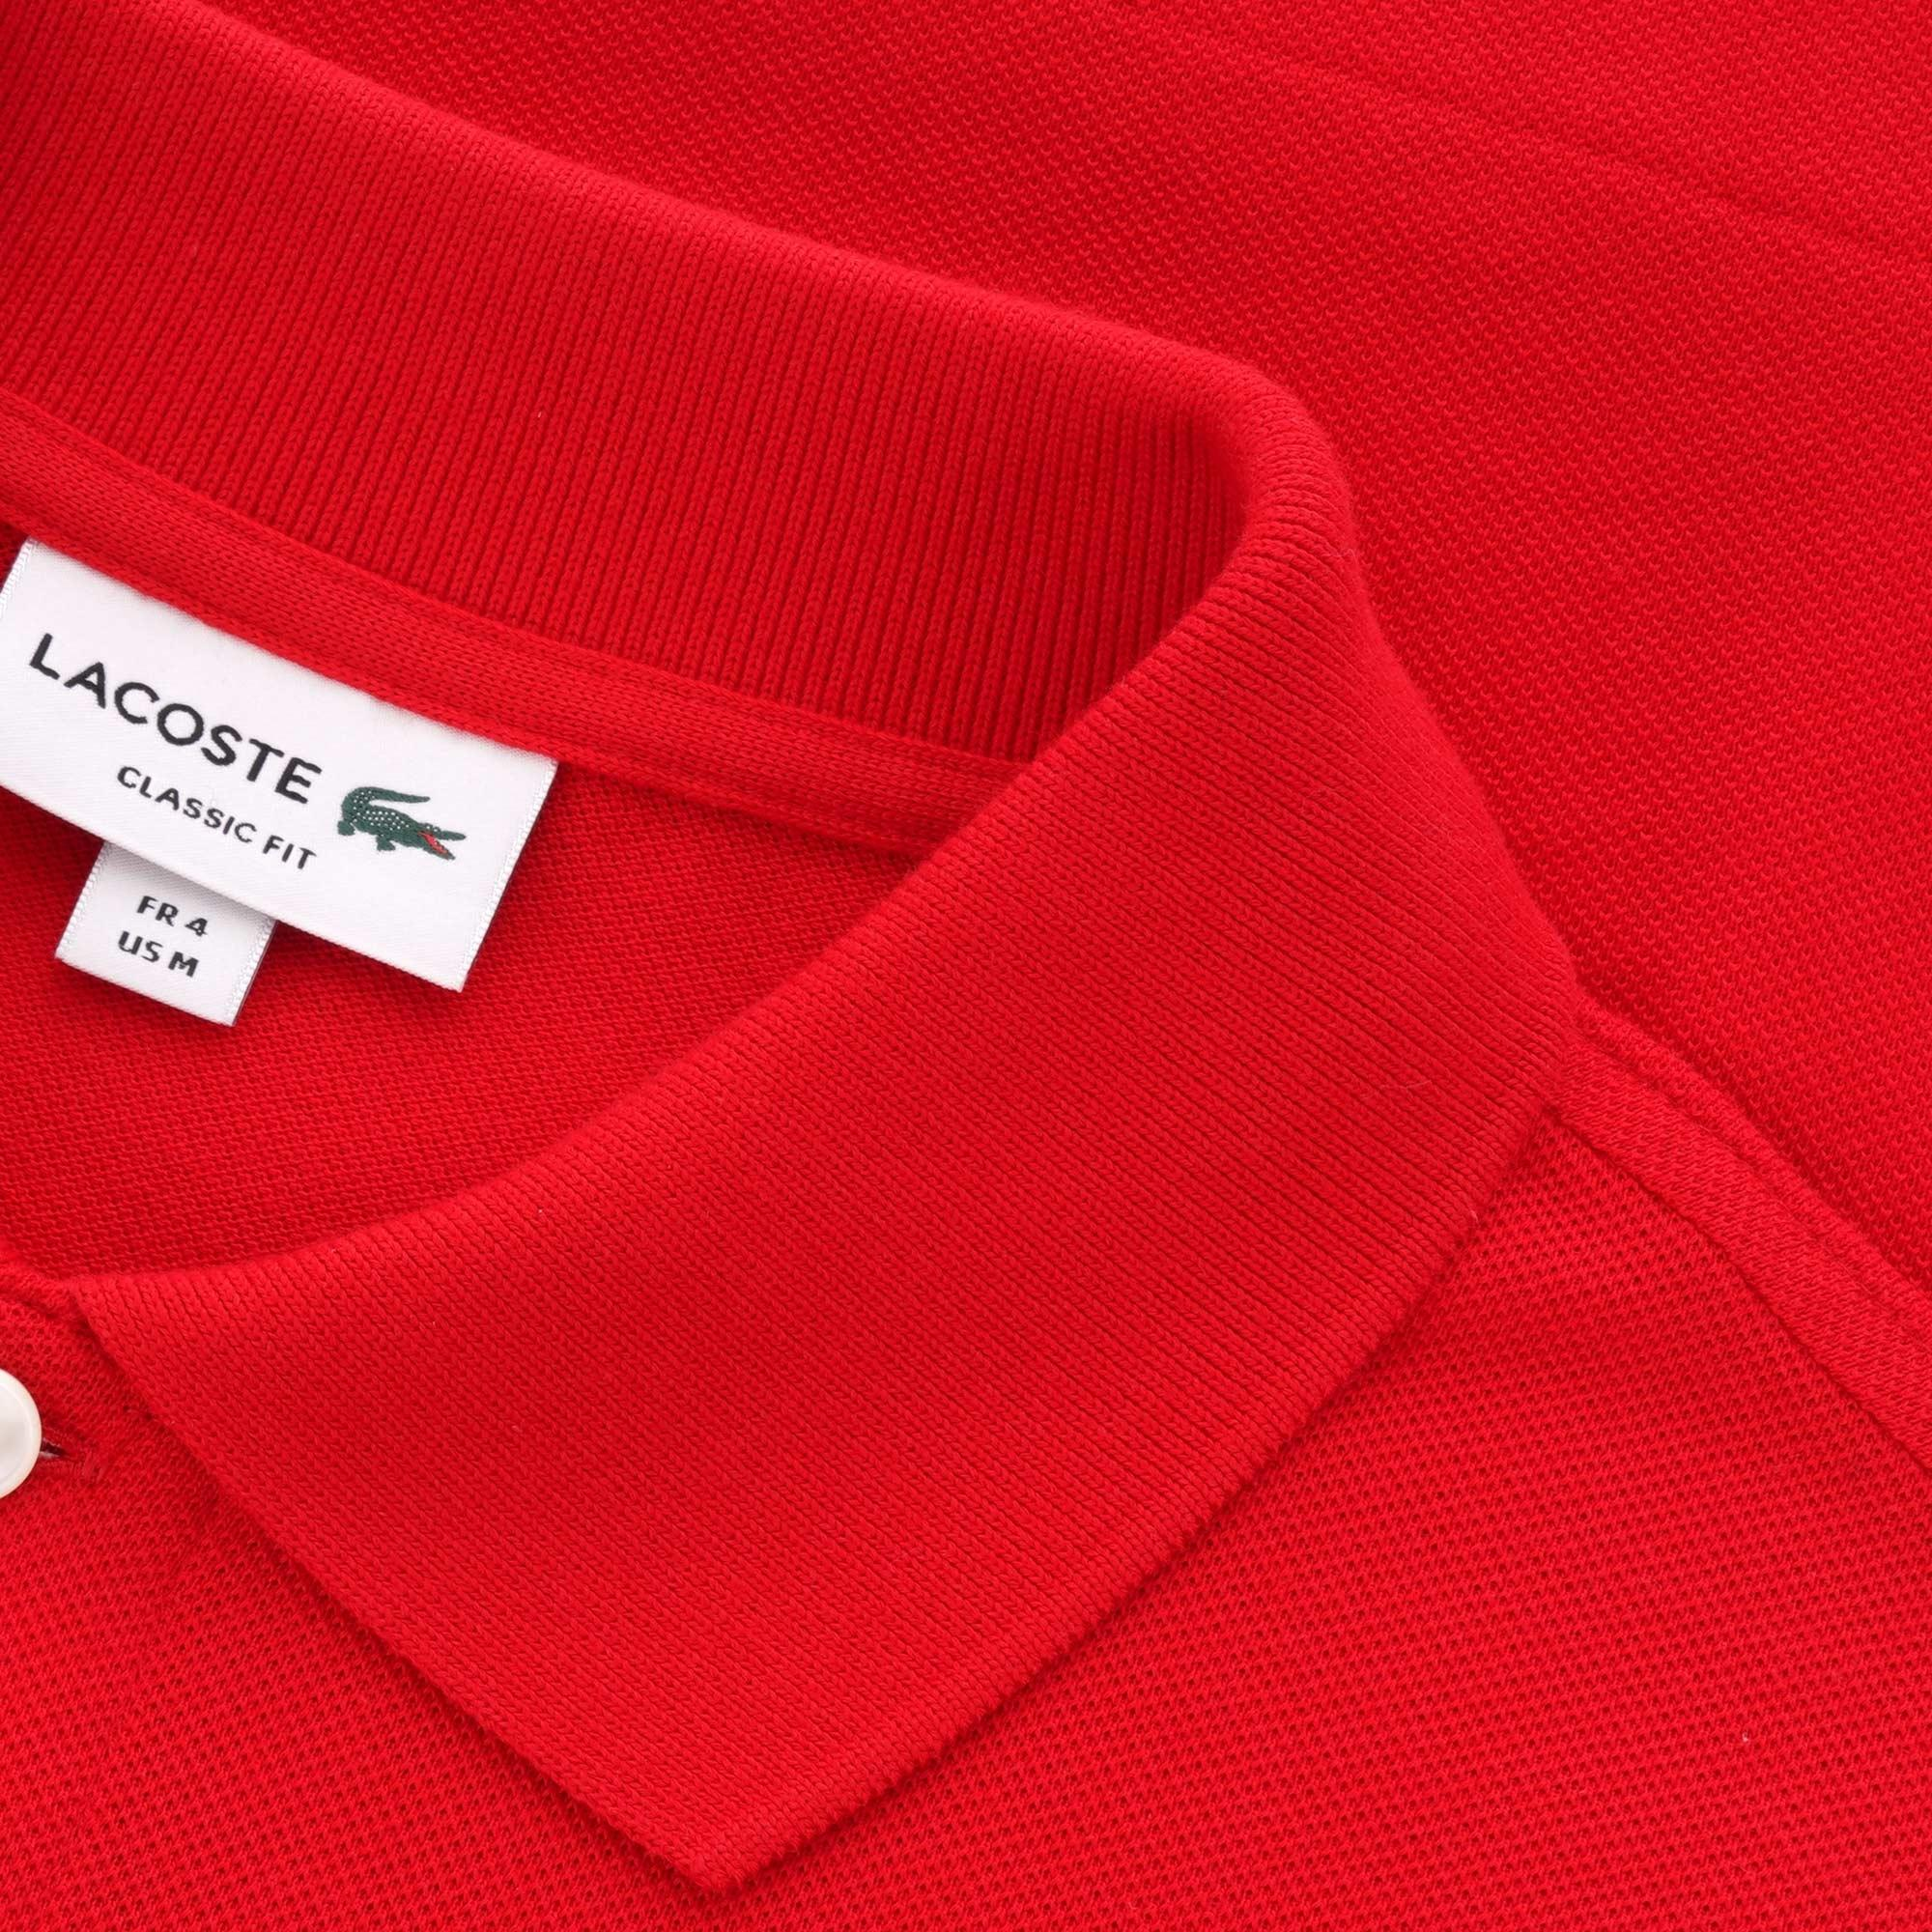 5efdfa8c9 Lacoste - Red L.12.12 Polo Shirt for Men - Lyst. View fullscreen